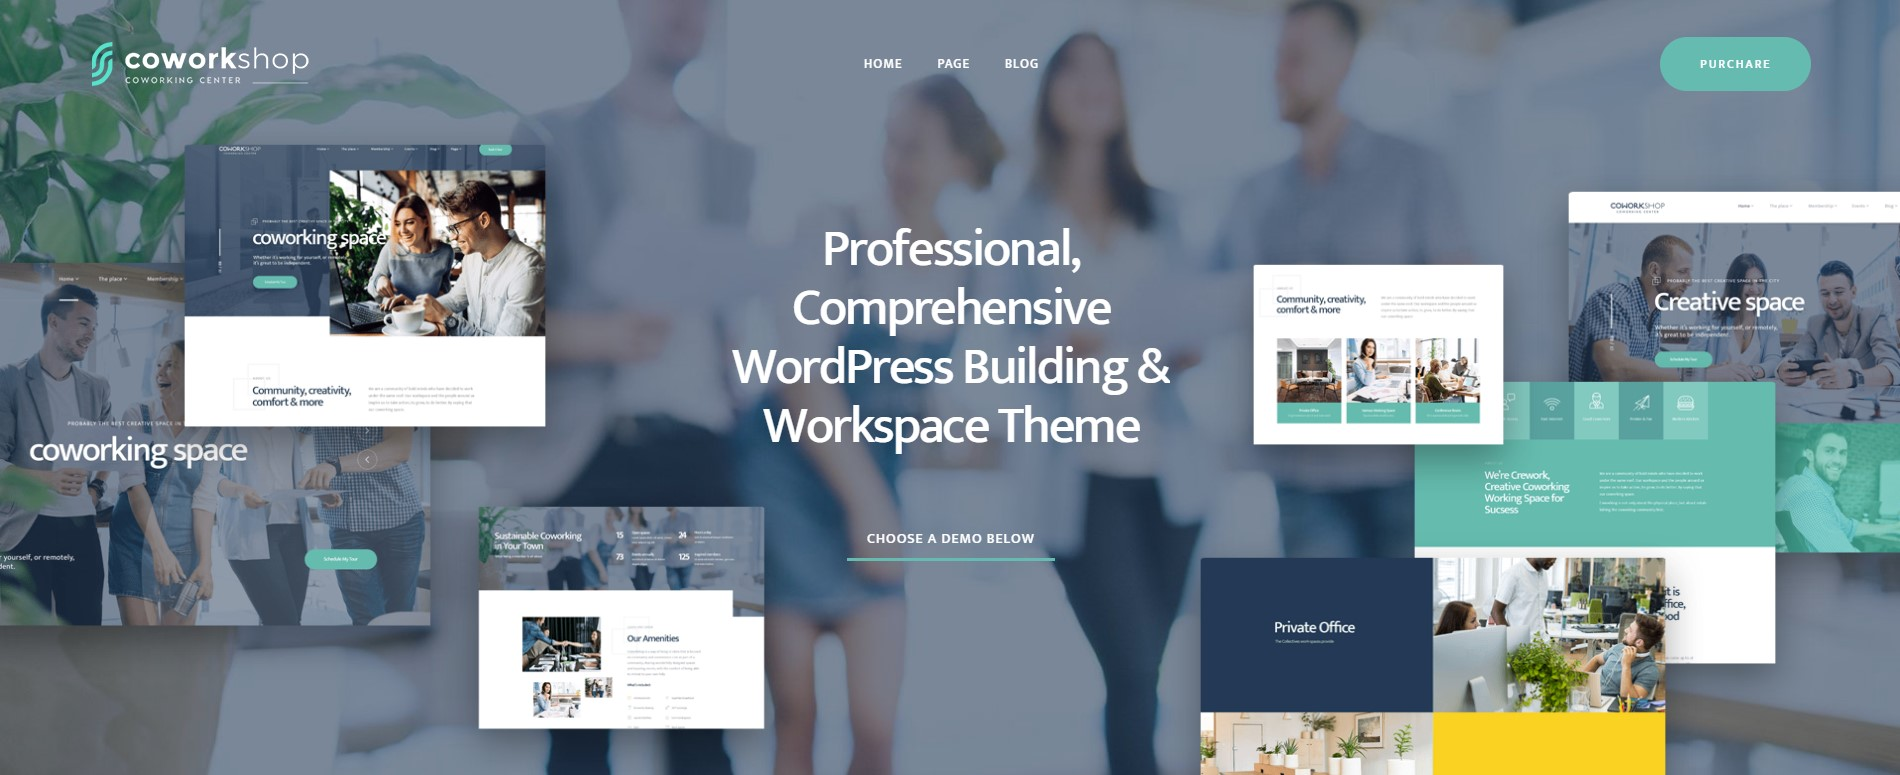 Coworkshop Coworking Space WordPress Theme